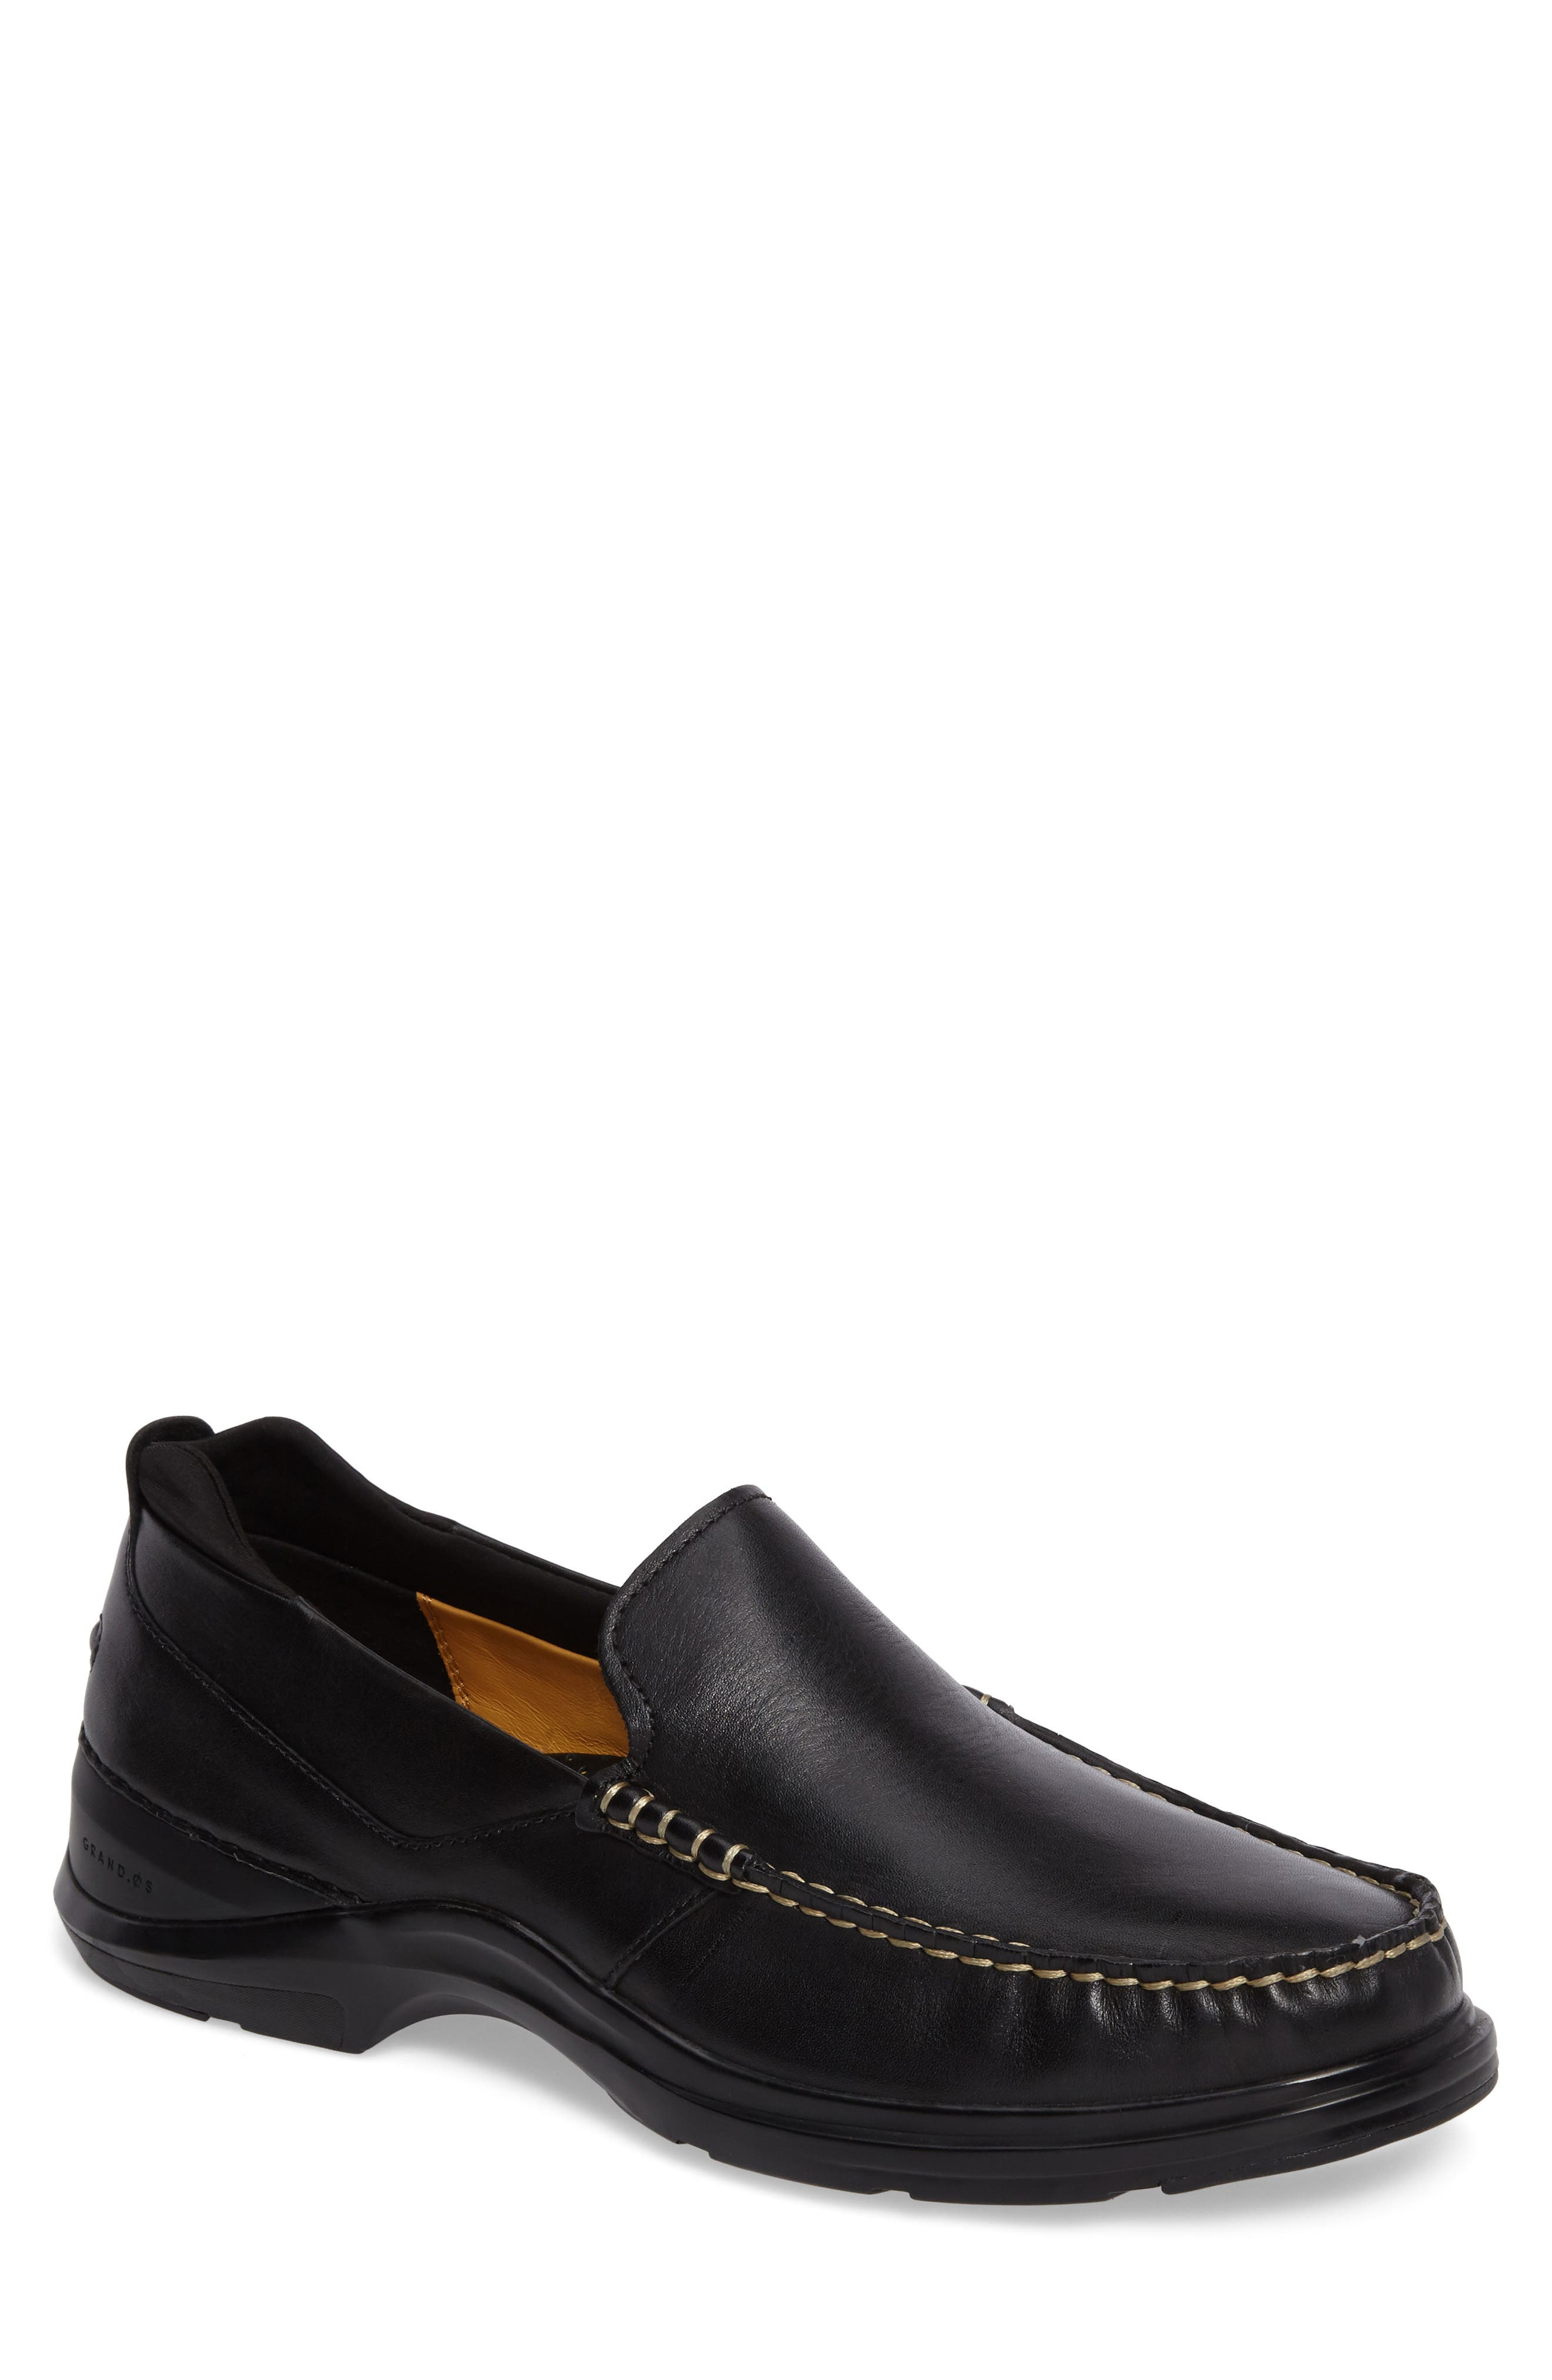 Bancroft Loafer,                         Main,                         color, Black